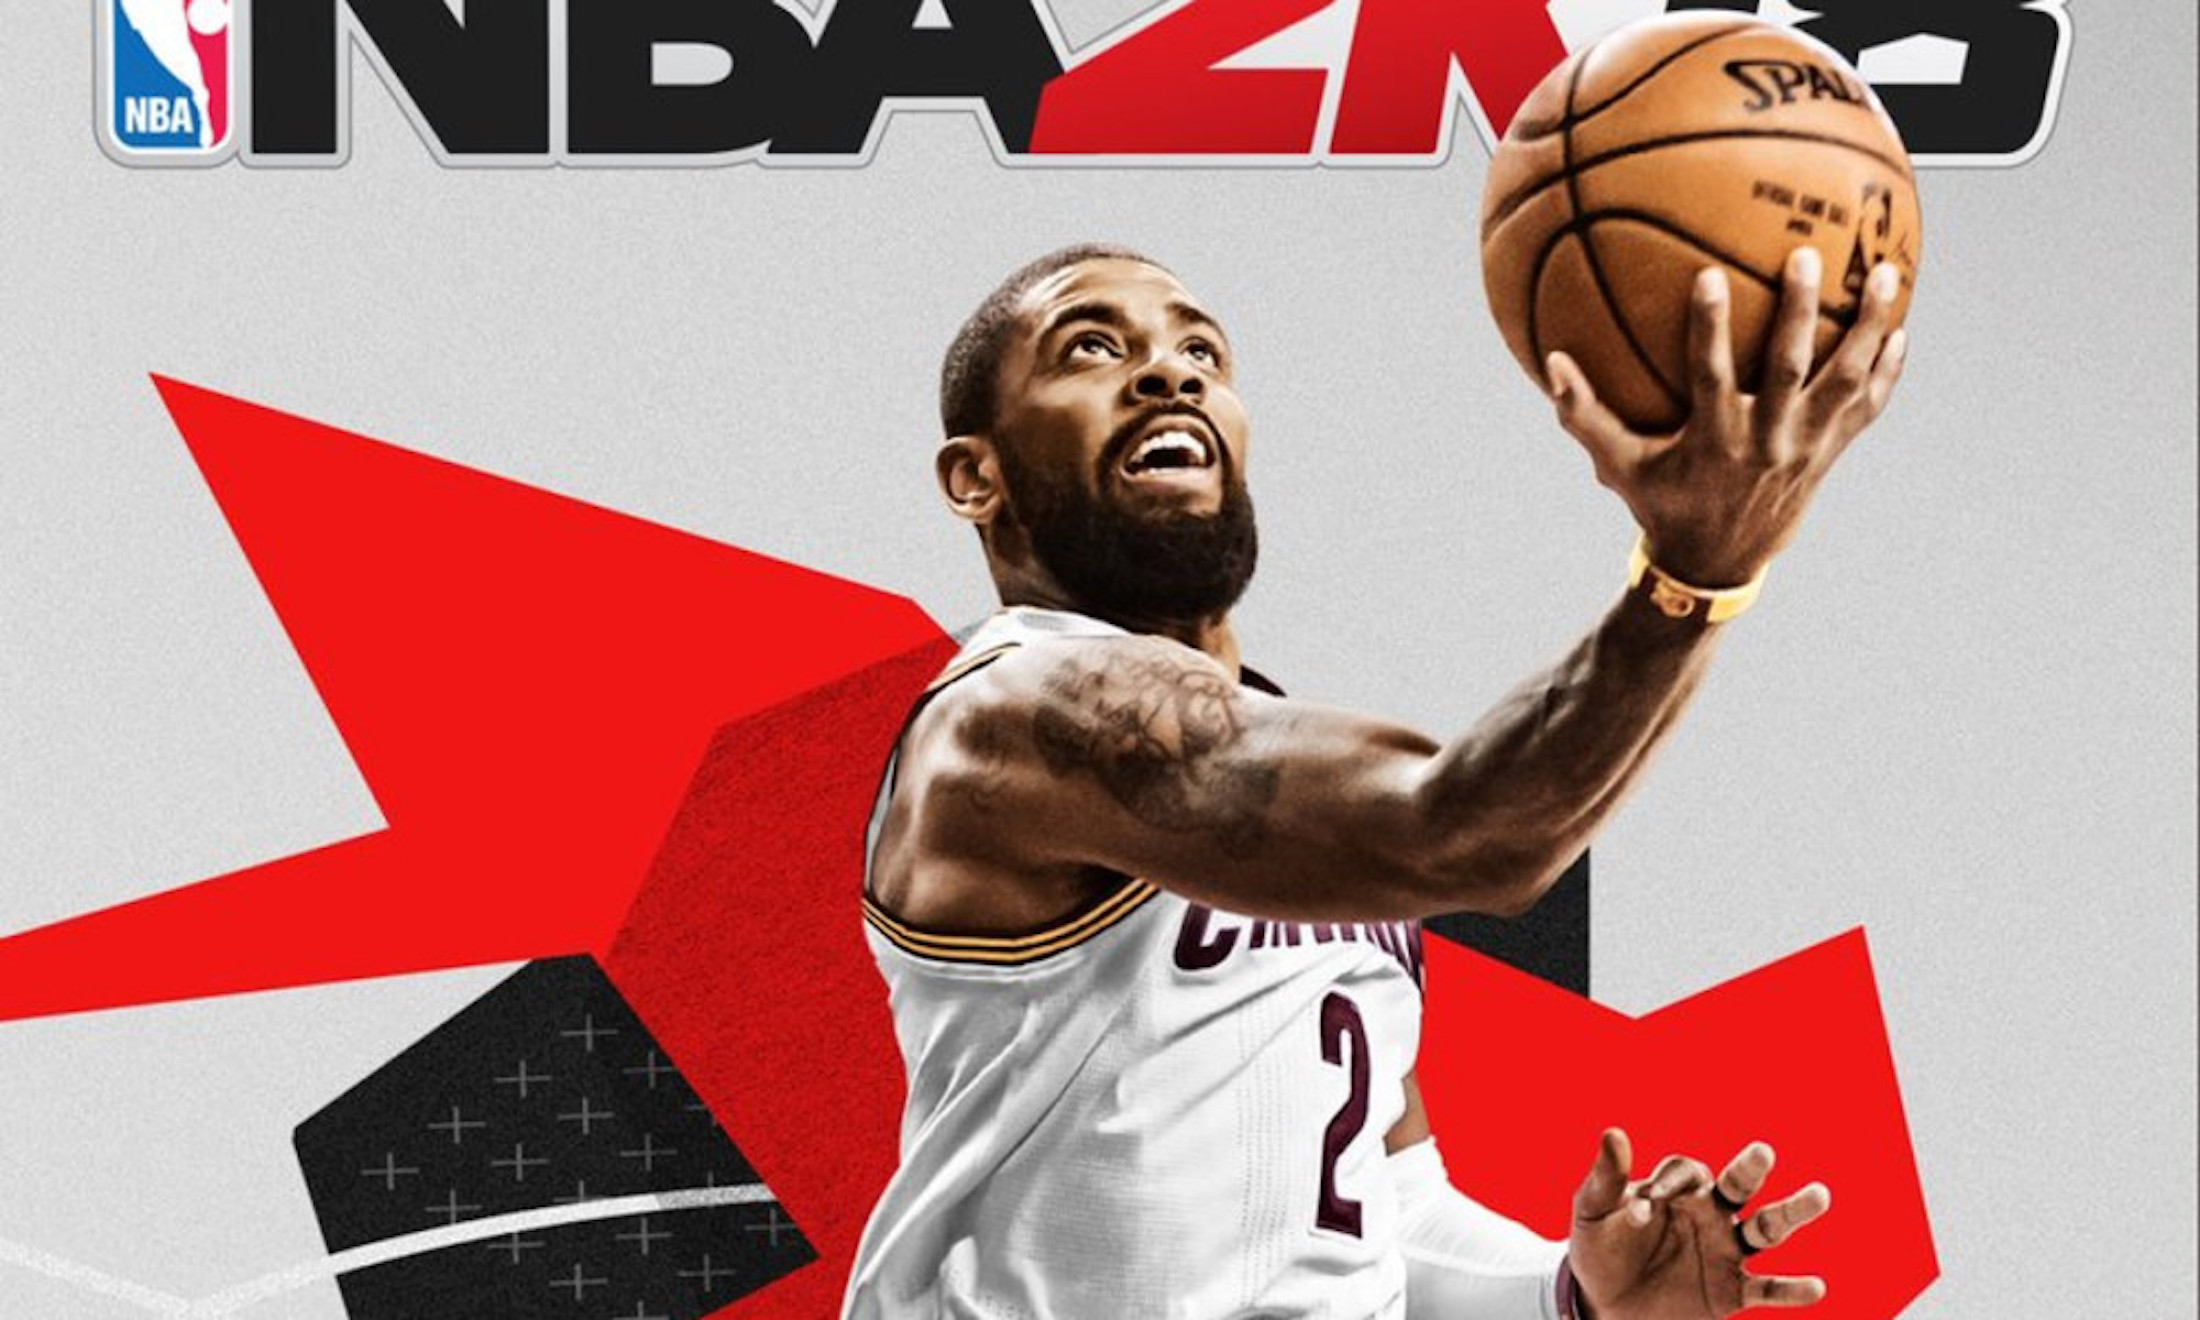 The new NBA 2K18 includes Cleveland Cavaliers player Kyrie Irving as one of its featured player for its upcoming edition.